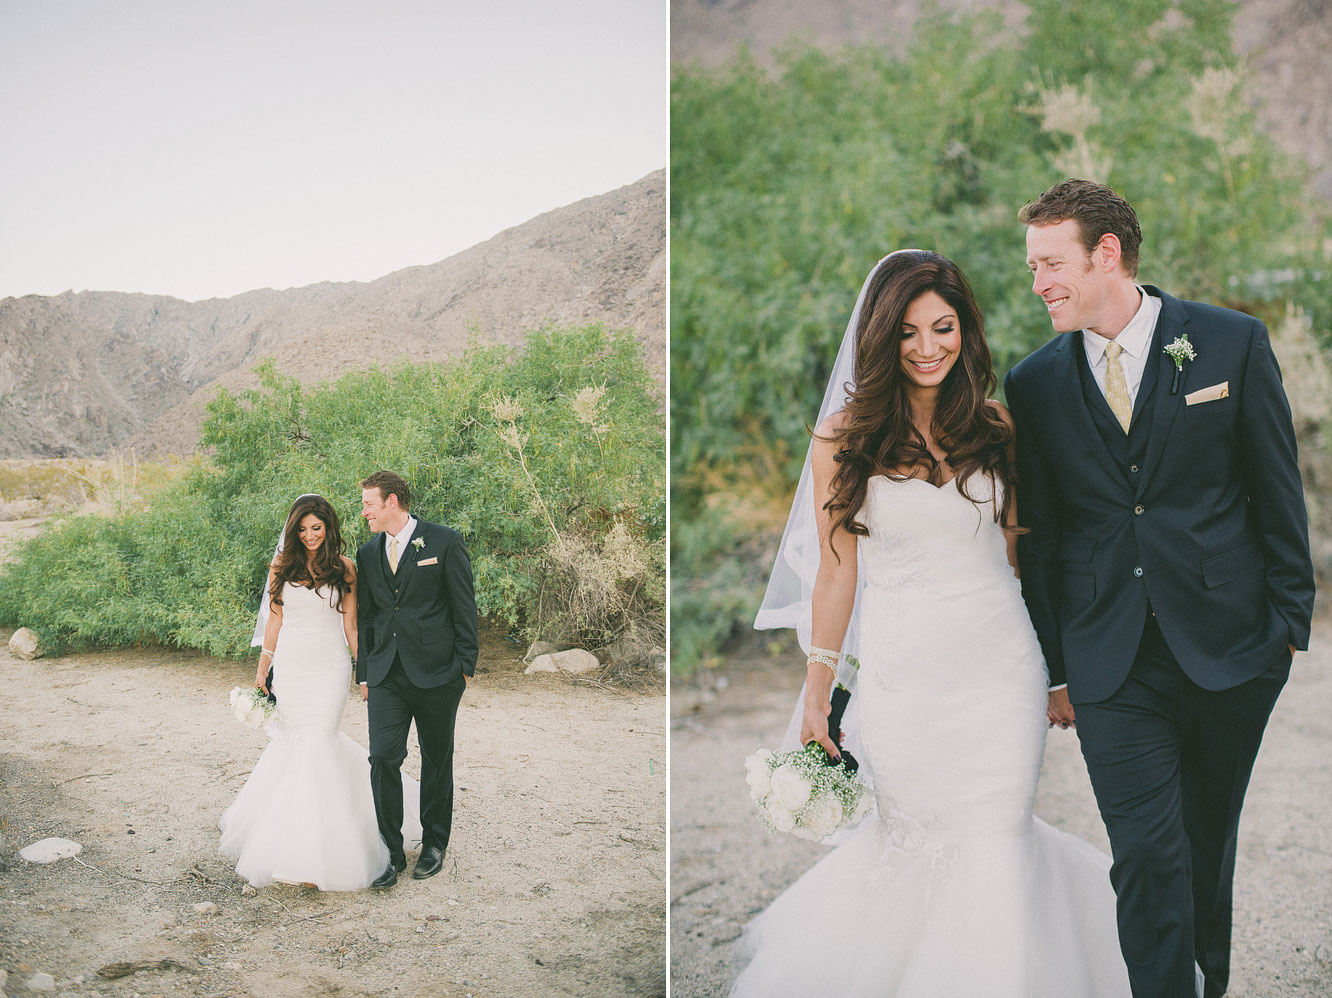 viceroy-palm-springs-wedding-14